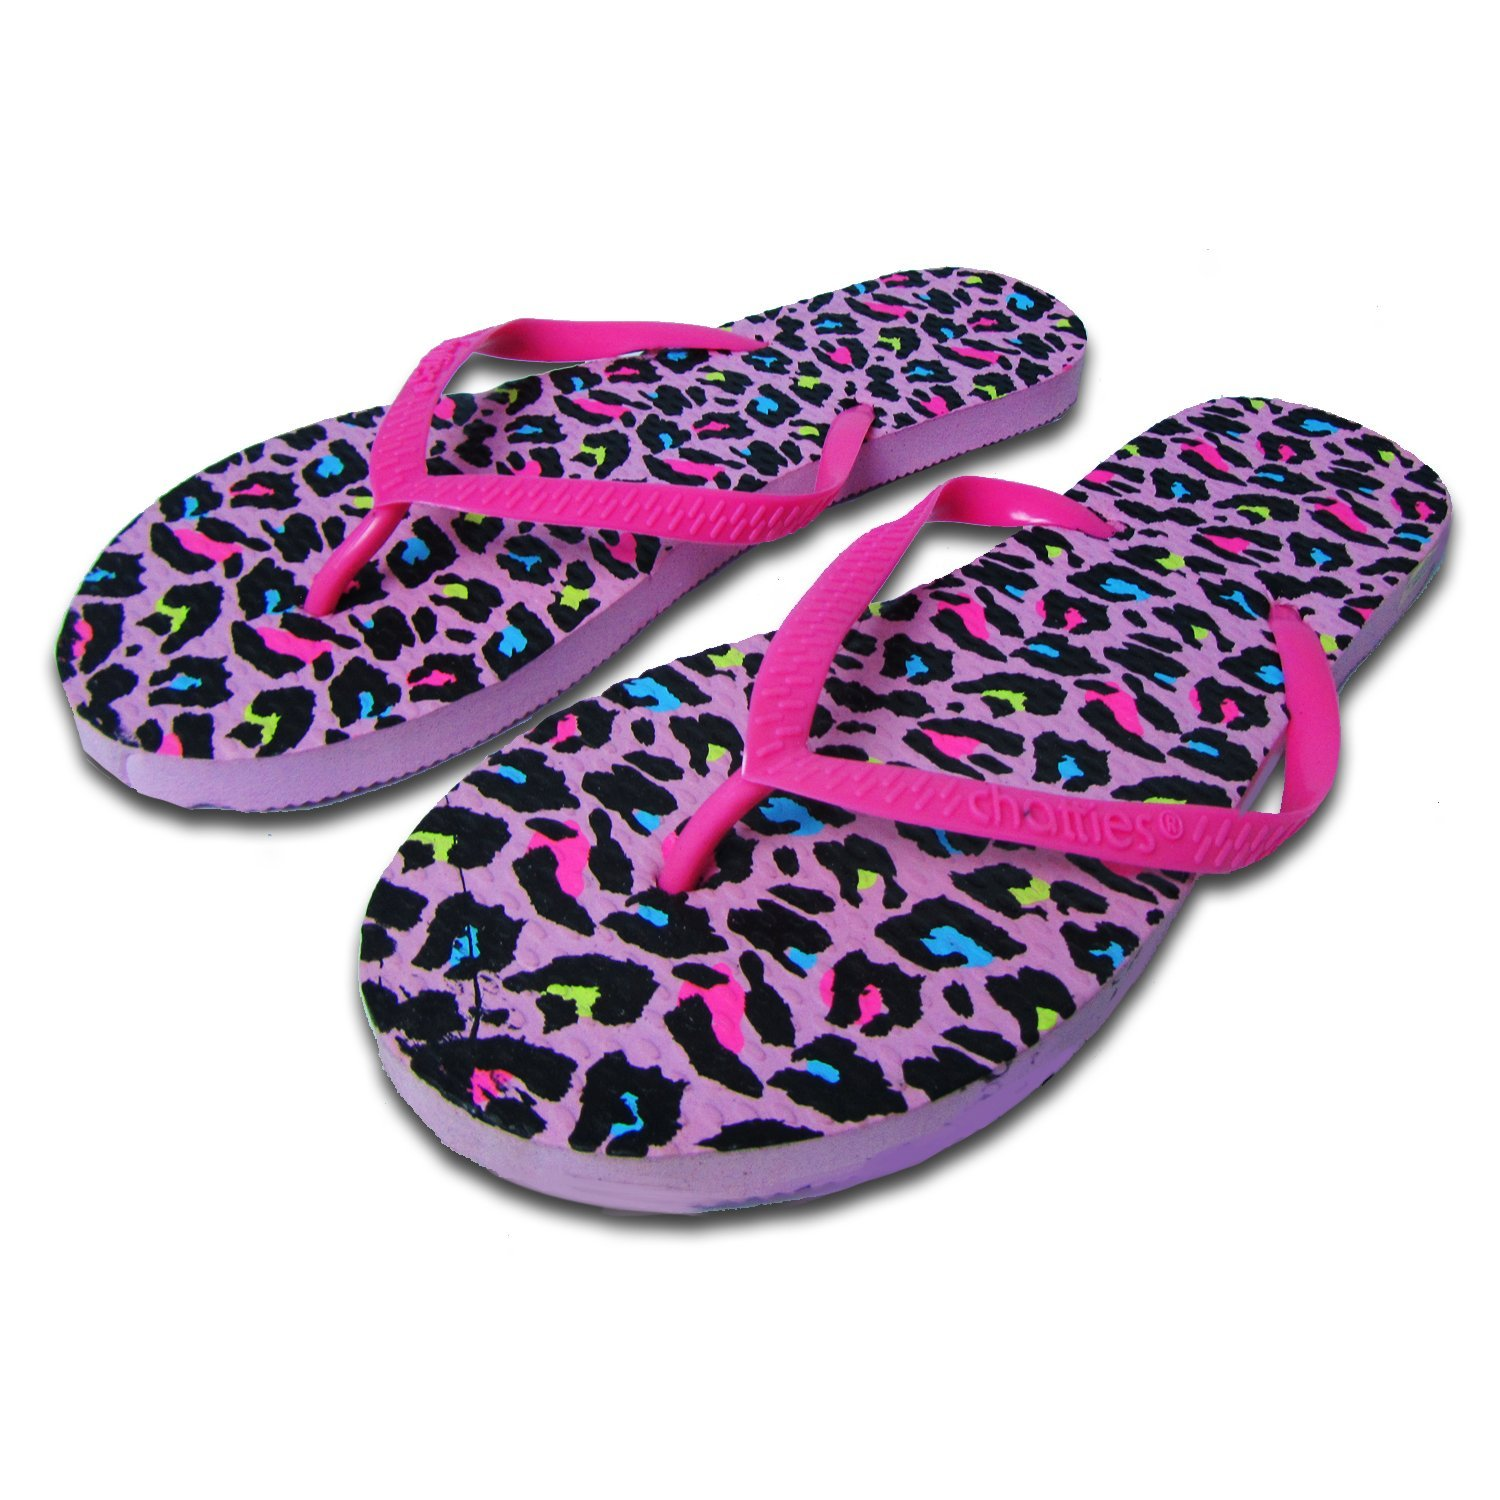 be2f277b2cf933 Get Quotations · Chatties Women s Casual Pink Rubber Flip Flops Slippers